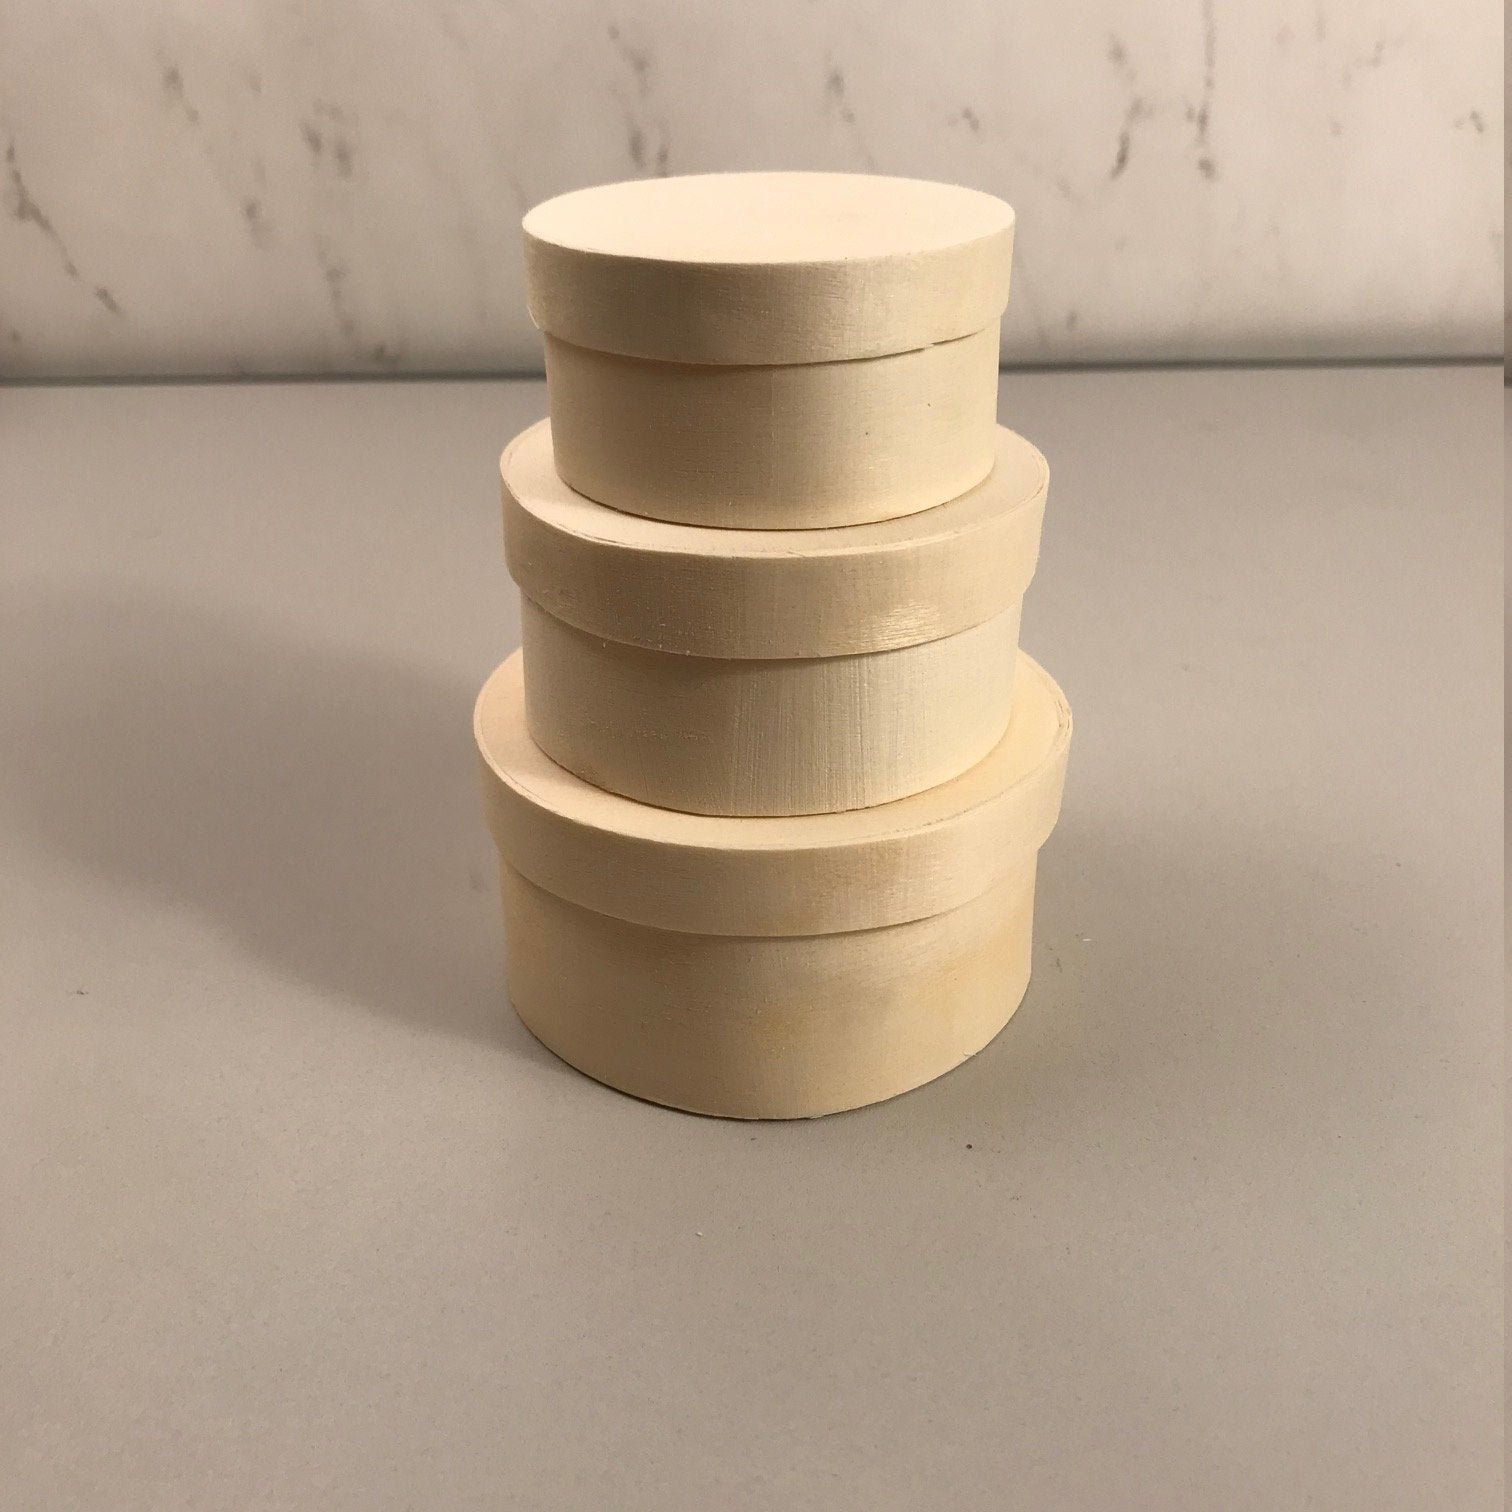 6 pack of 3piece set nesting bentwood round boxes ready